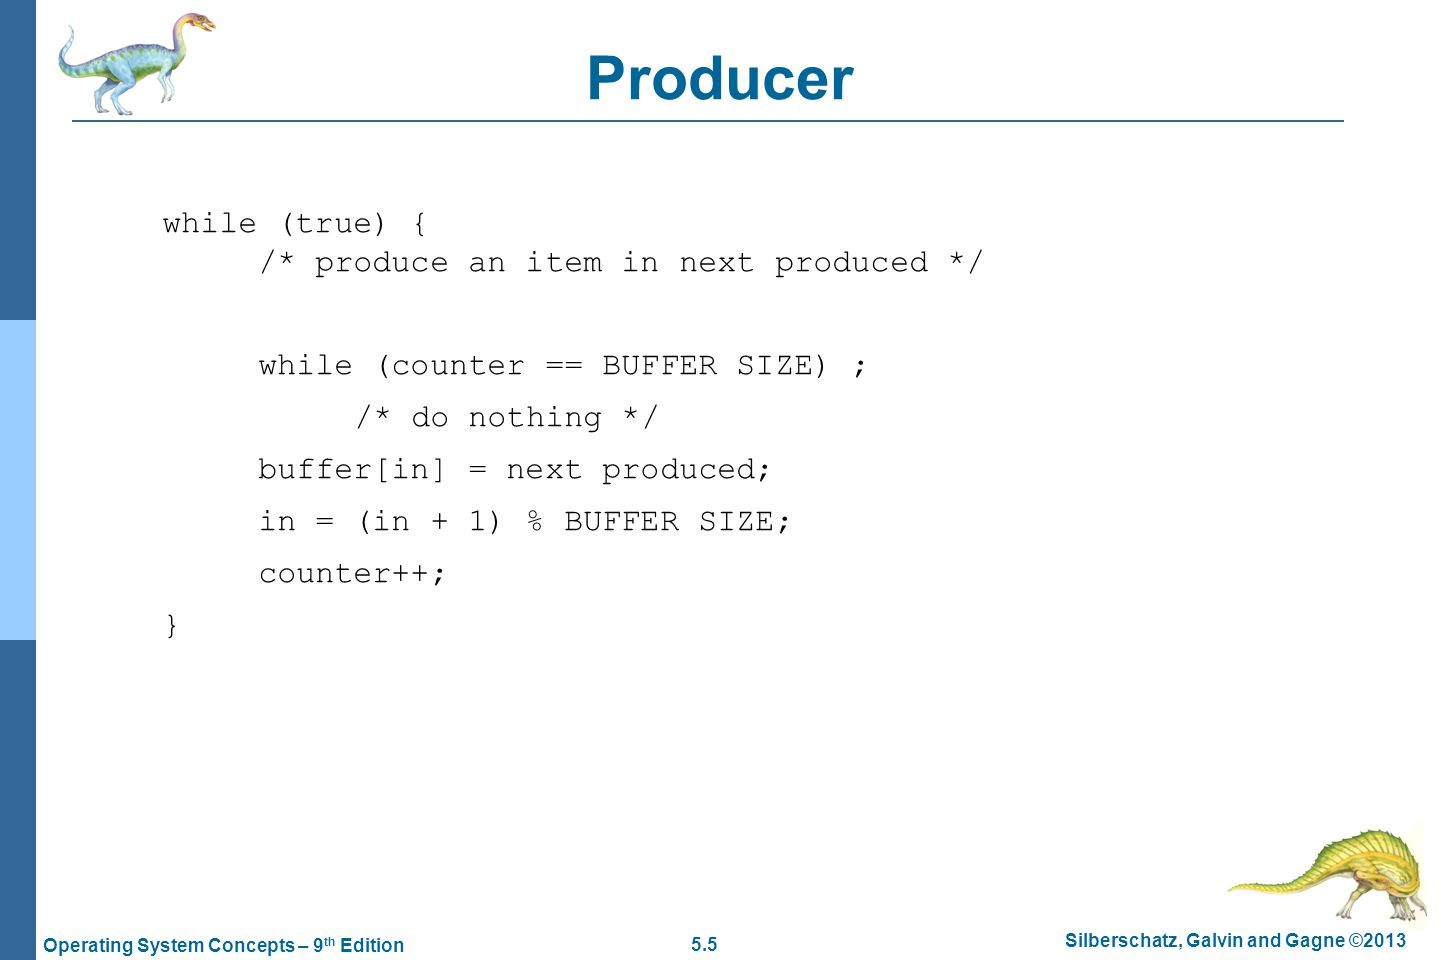 5.5 Silberschatz, Galvin and Gagne ©2013 Operating System Concepts – 9 th Edition Producer while (true) { /* produce an item in next produced */ while (counter == BUFFER SIZE) ; /* do nothing */ buffer[in] = next produced; in = (in + 1) % BUFFER SIZE; counter++; }